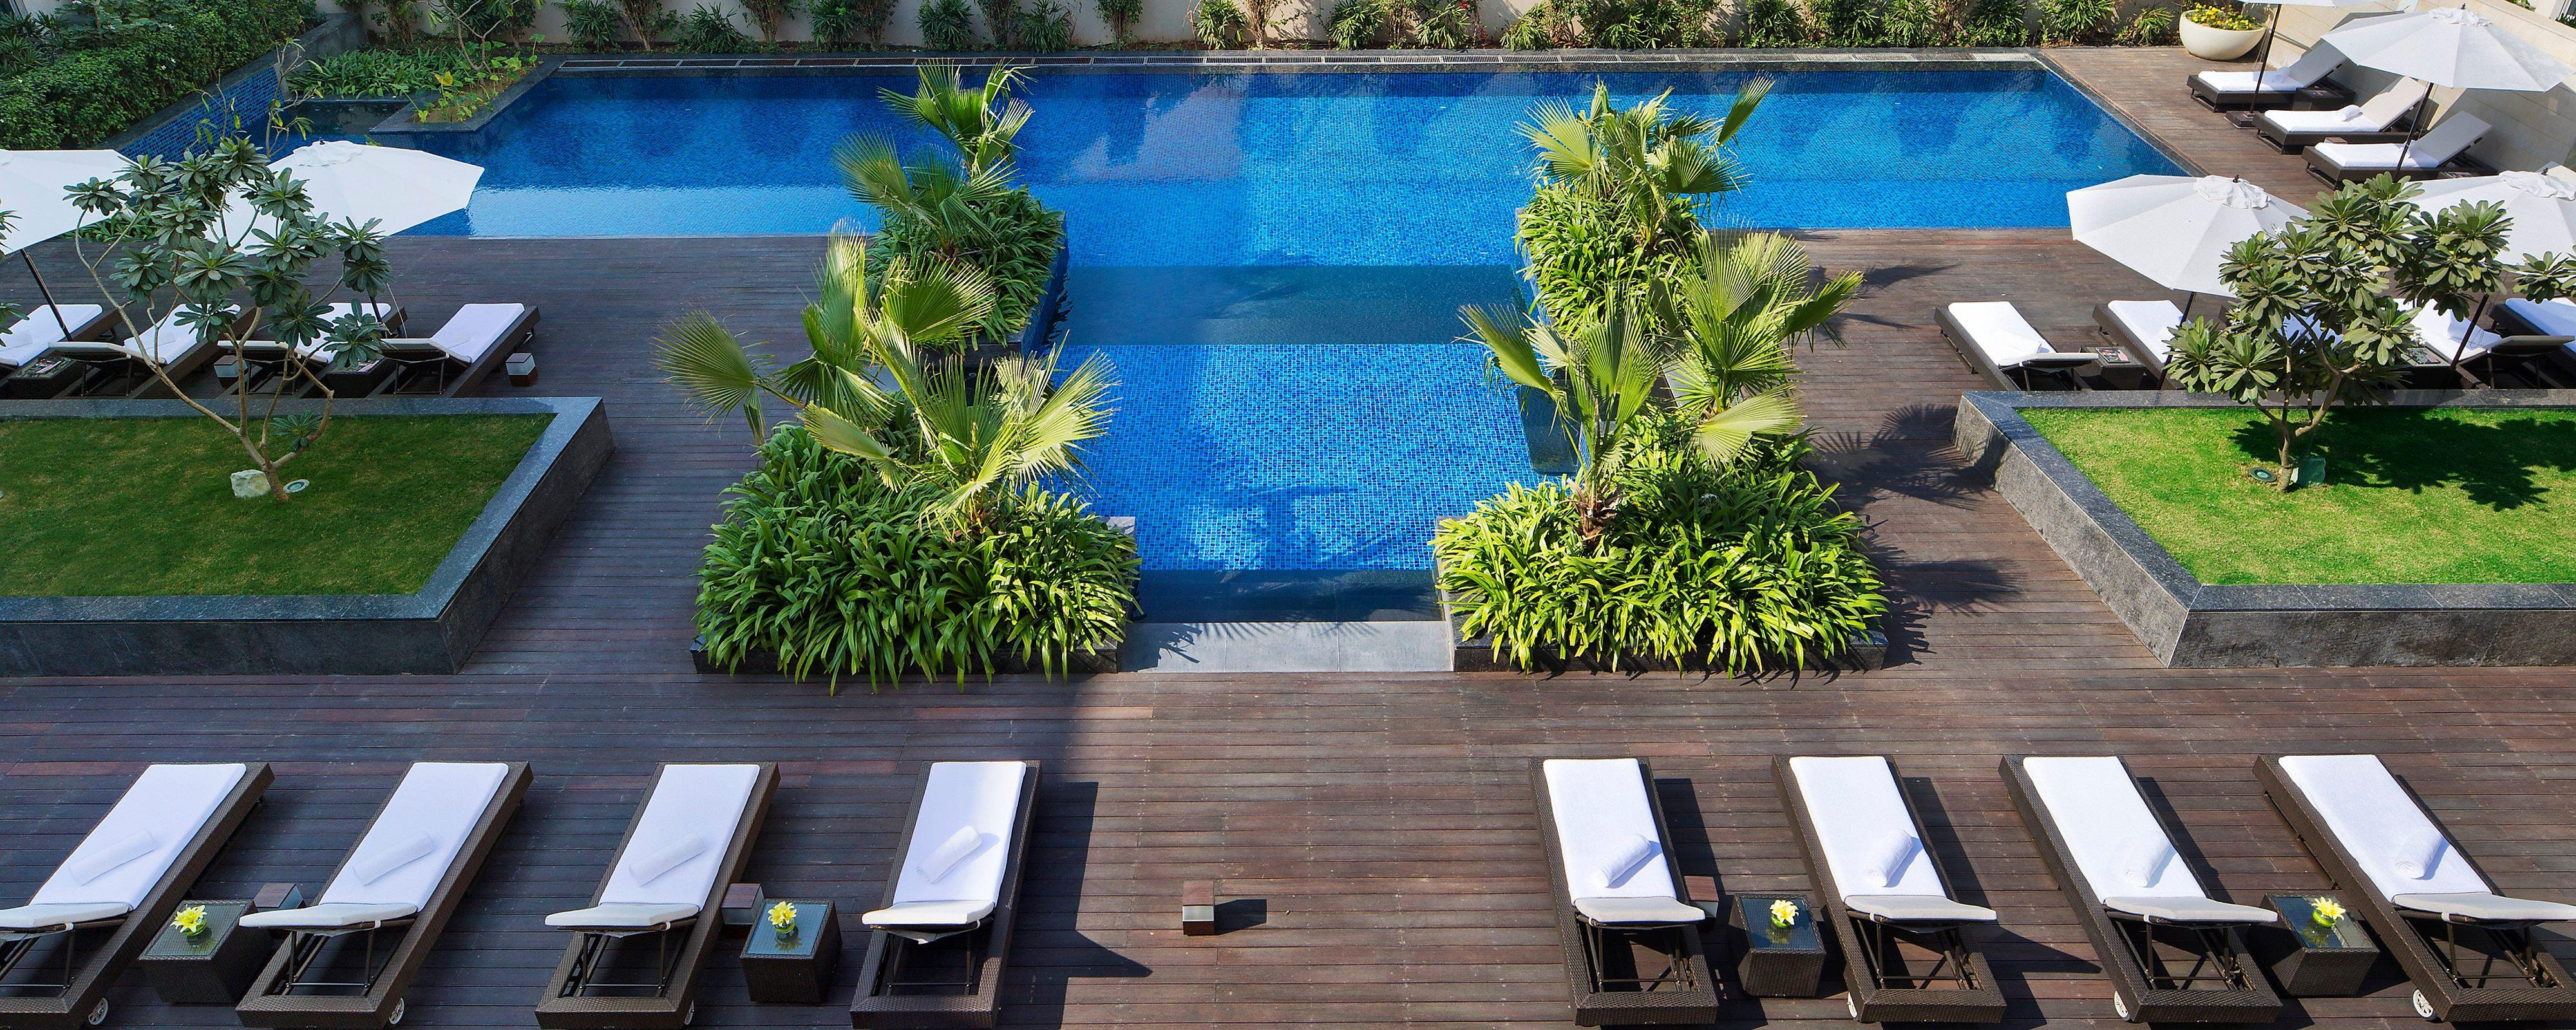 New Delhi hotel outdoor pool